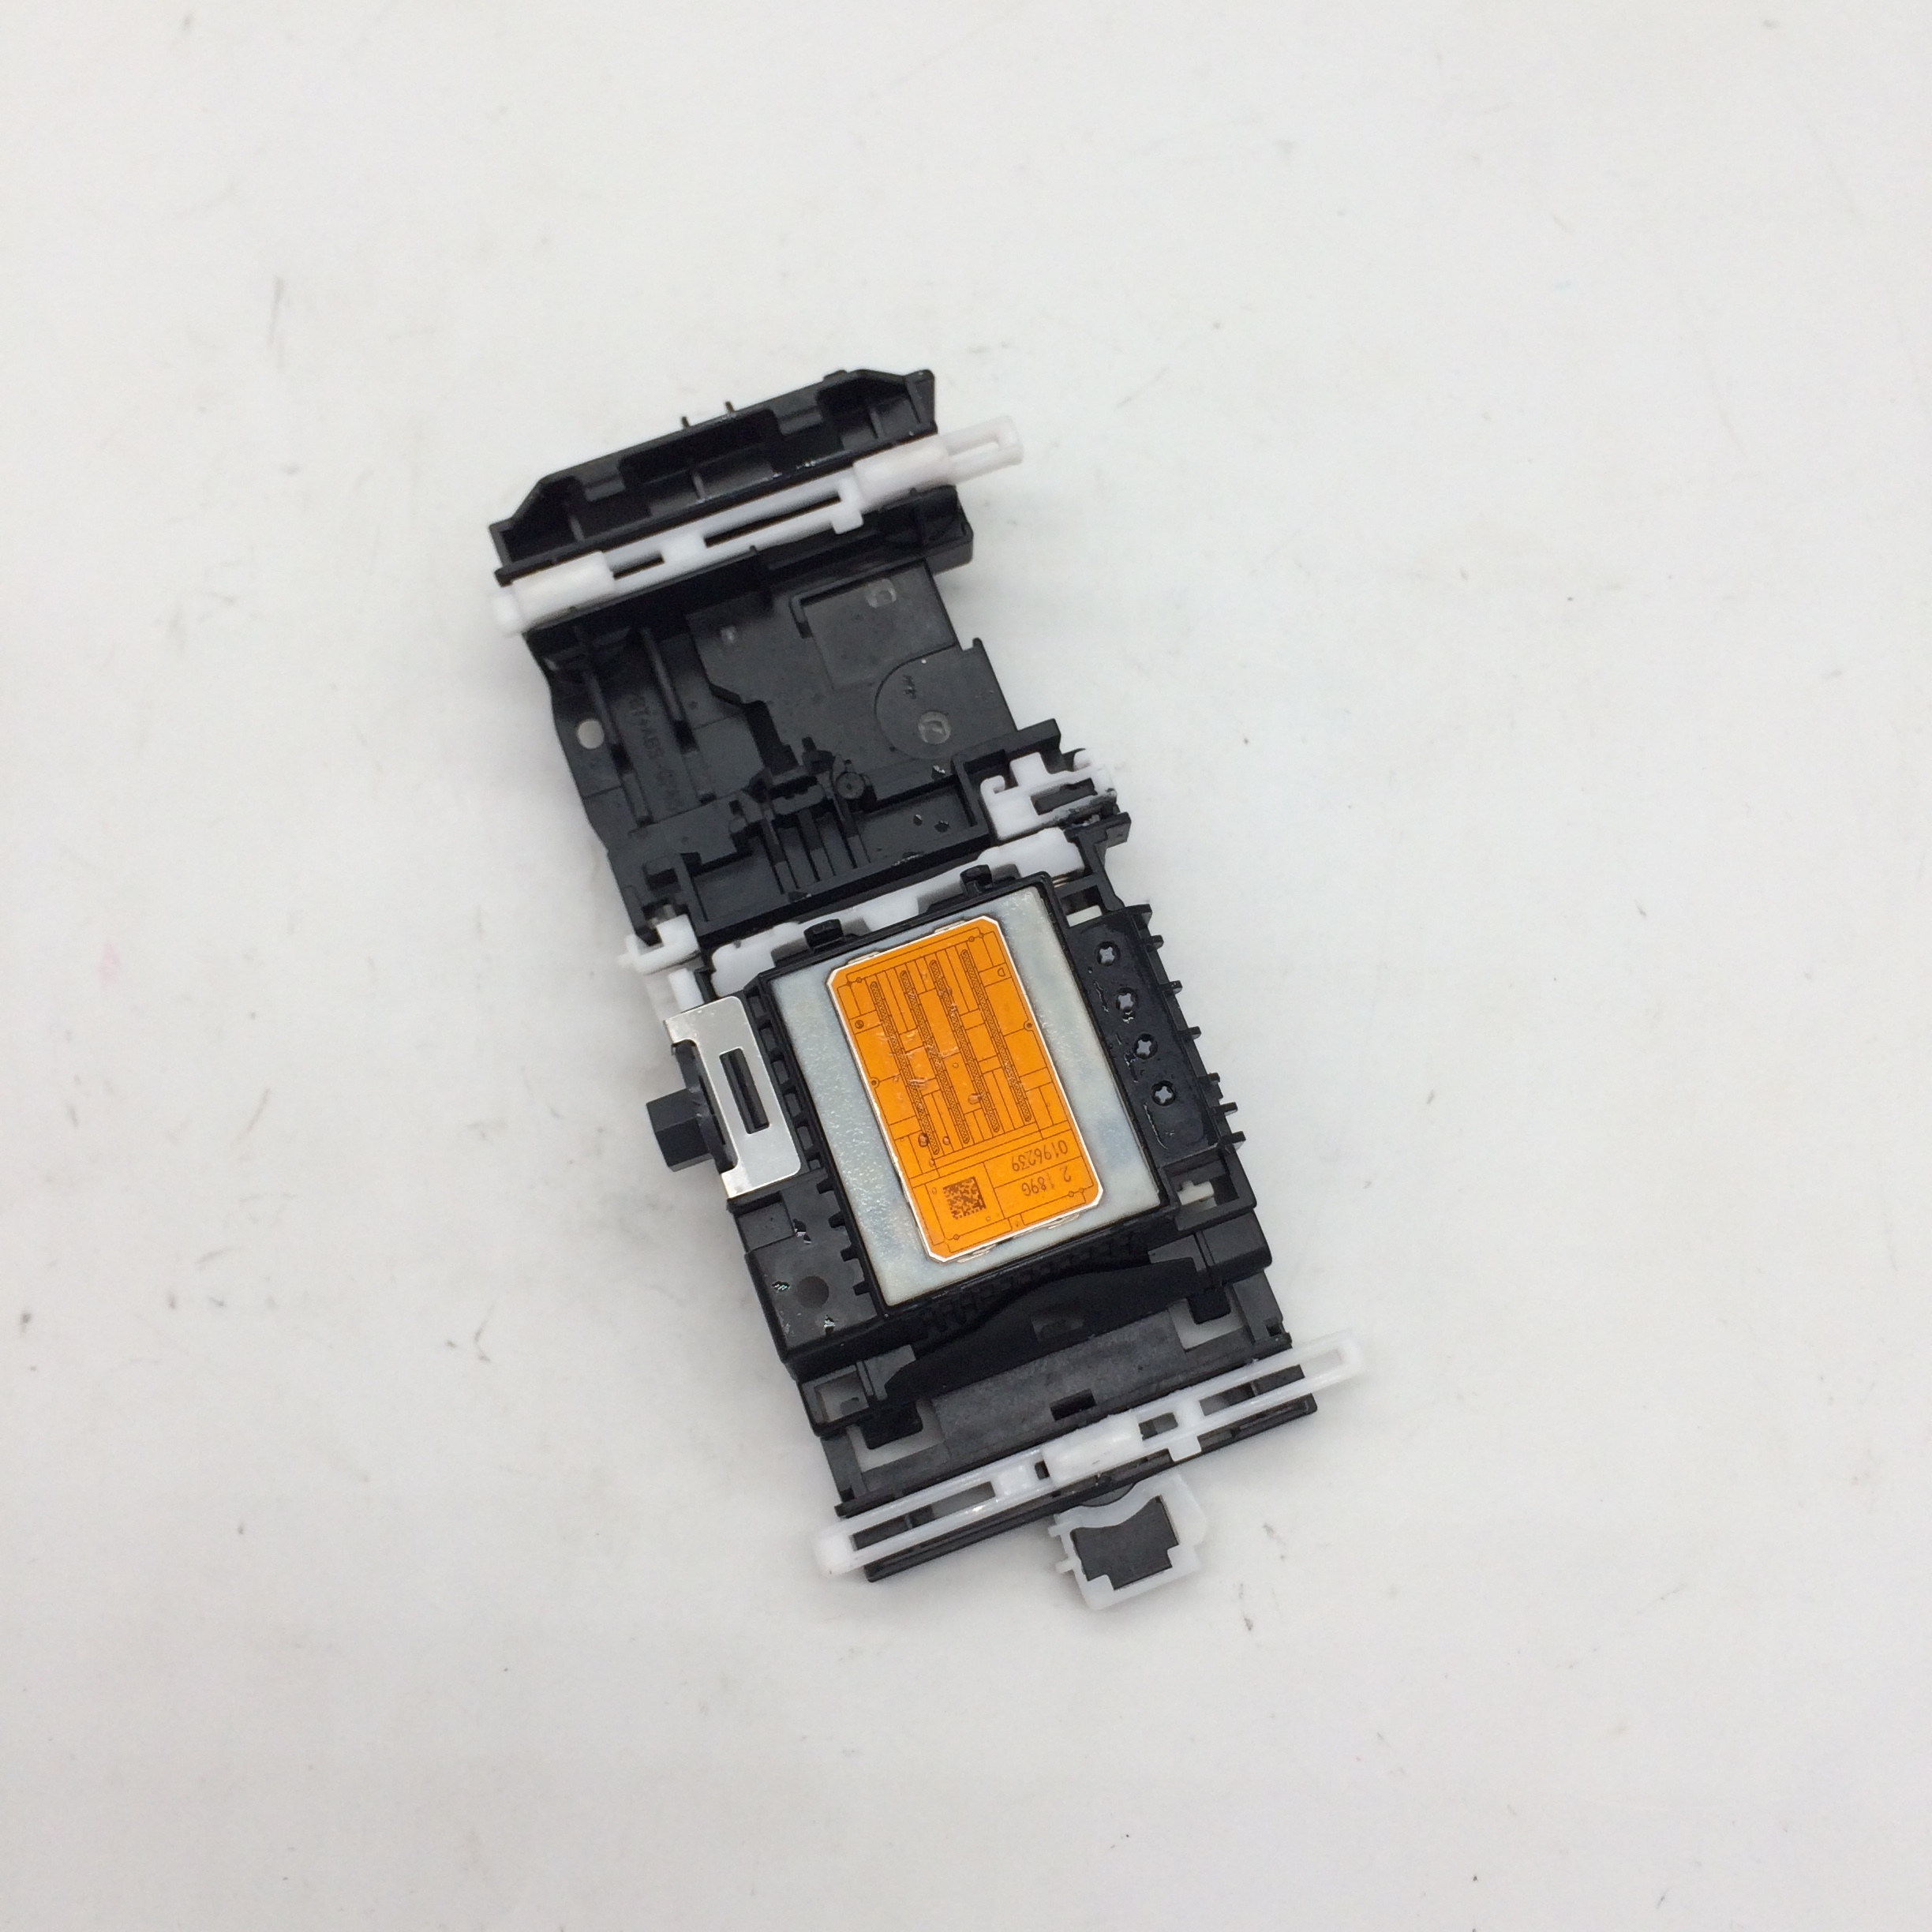 ORIGINAL 990 A4 Printhead For Brother DCP-395CN MFC-255CW MFC-295CN MFC-490CW MFC-495CW MFC-795CW DCP145C 163C 165C Printer